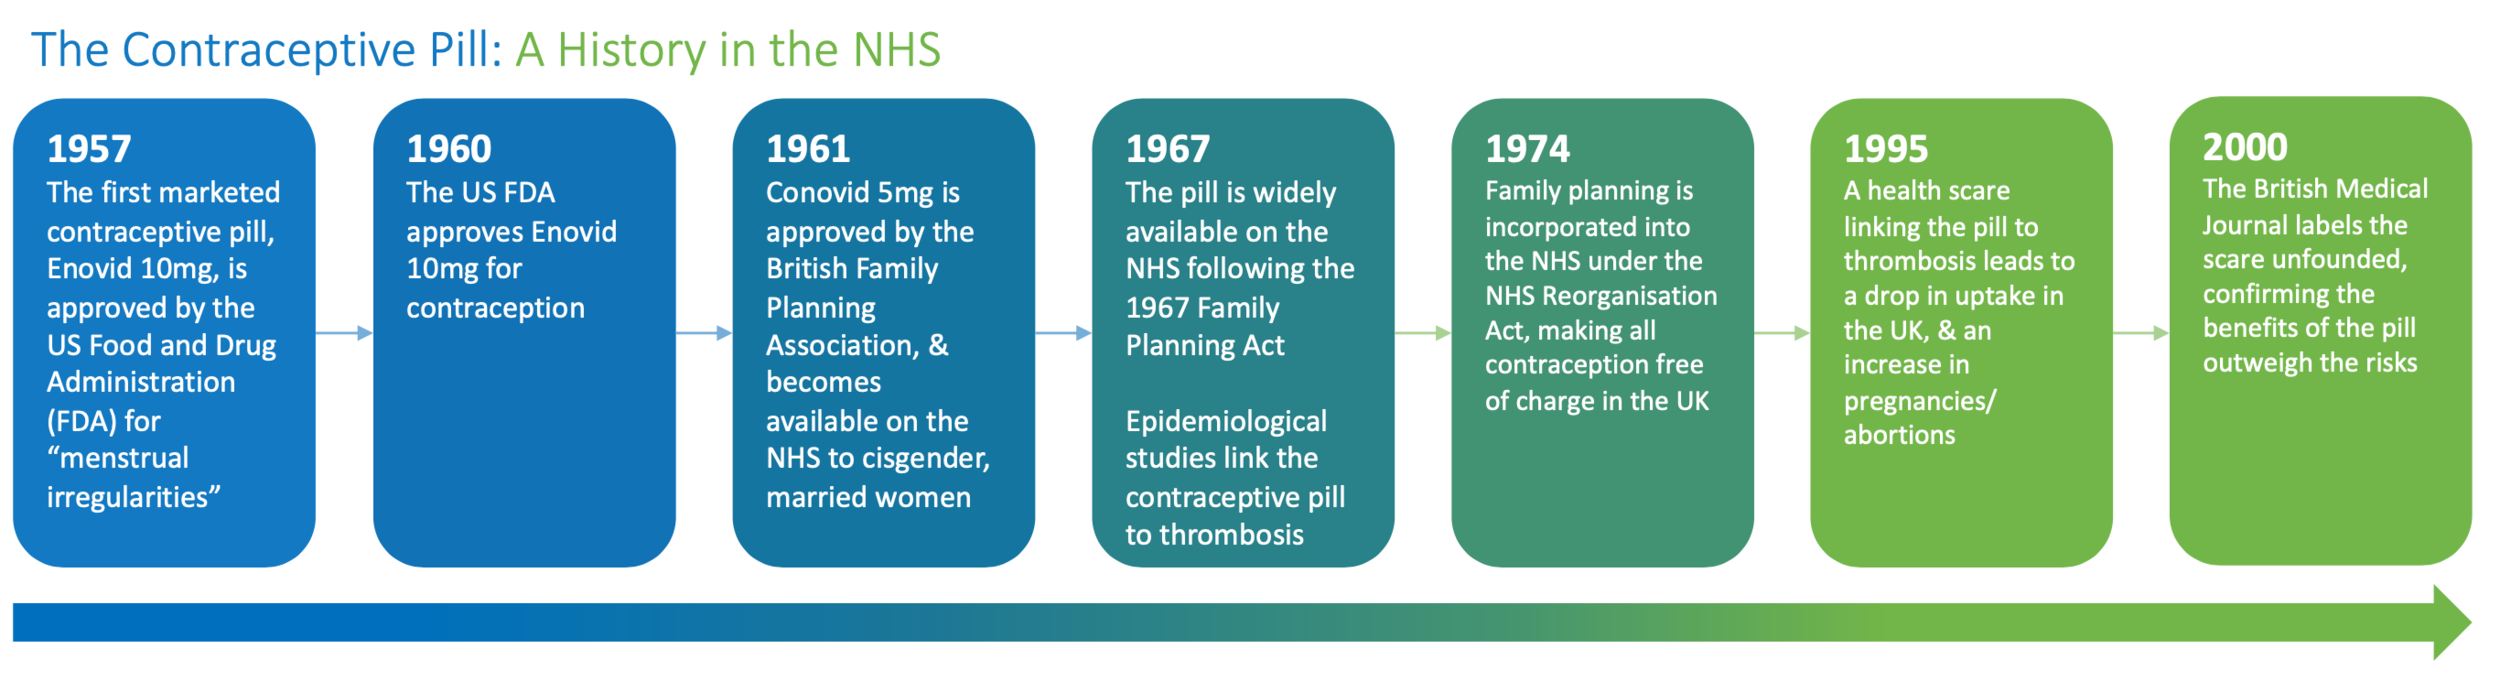 Contraceptive Pill Timeline.png